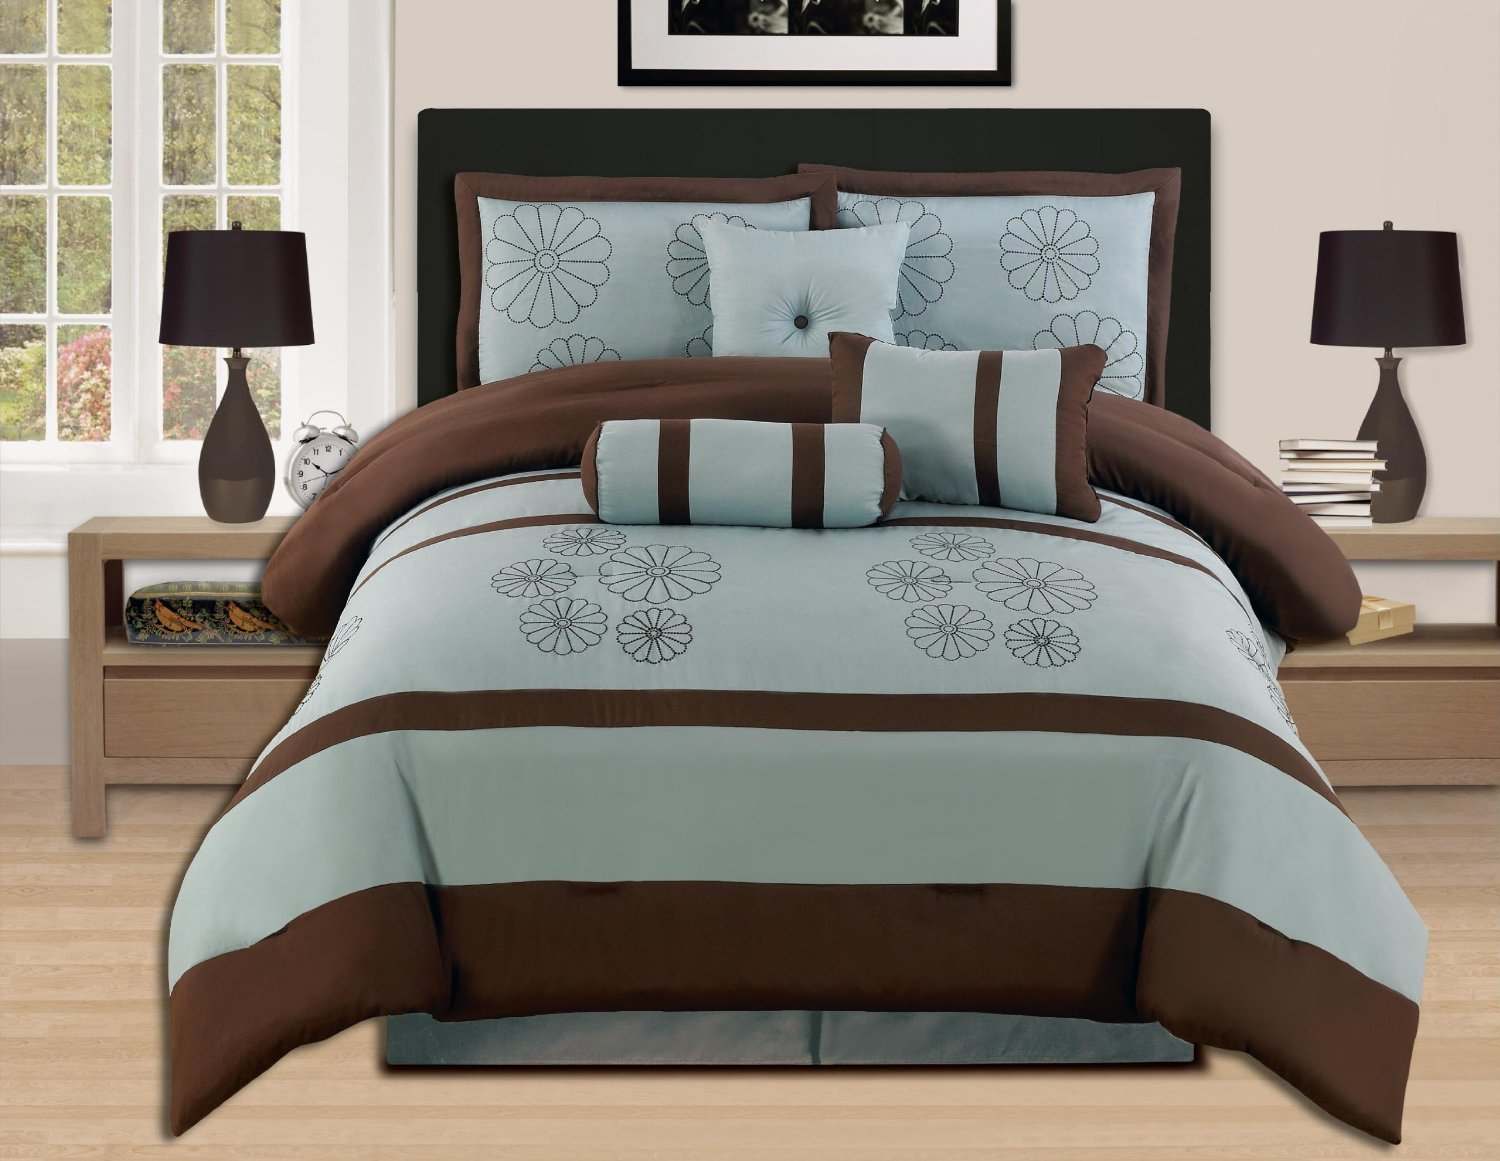 Green and brown bedding - 7 Pieces Luxury Embroidery Comforter Set Bed In A Bag Oversize